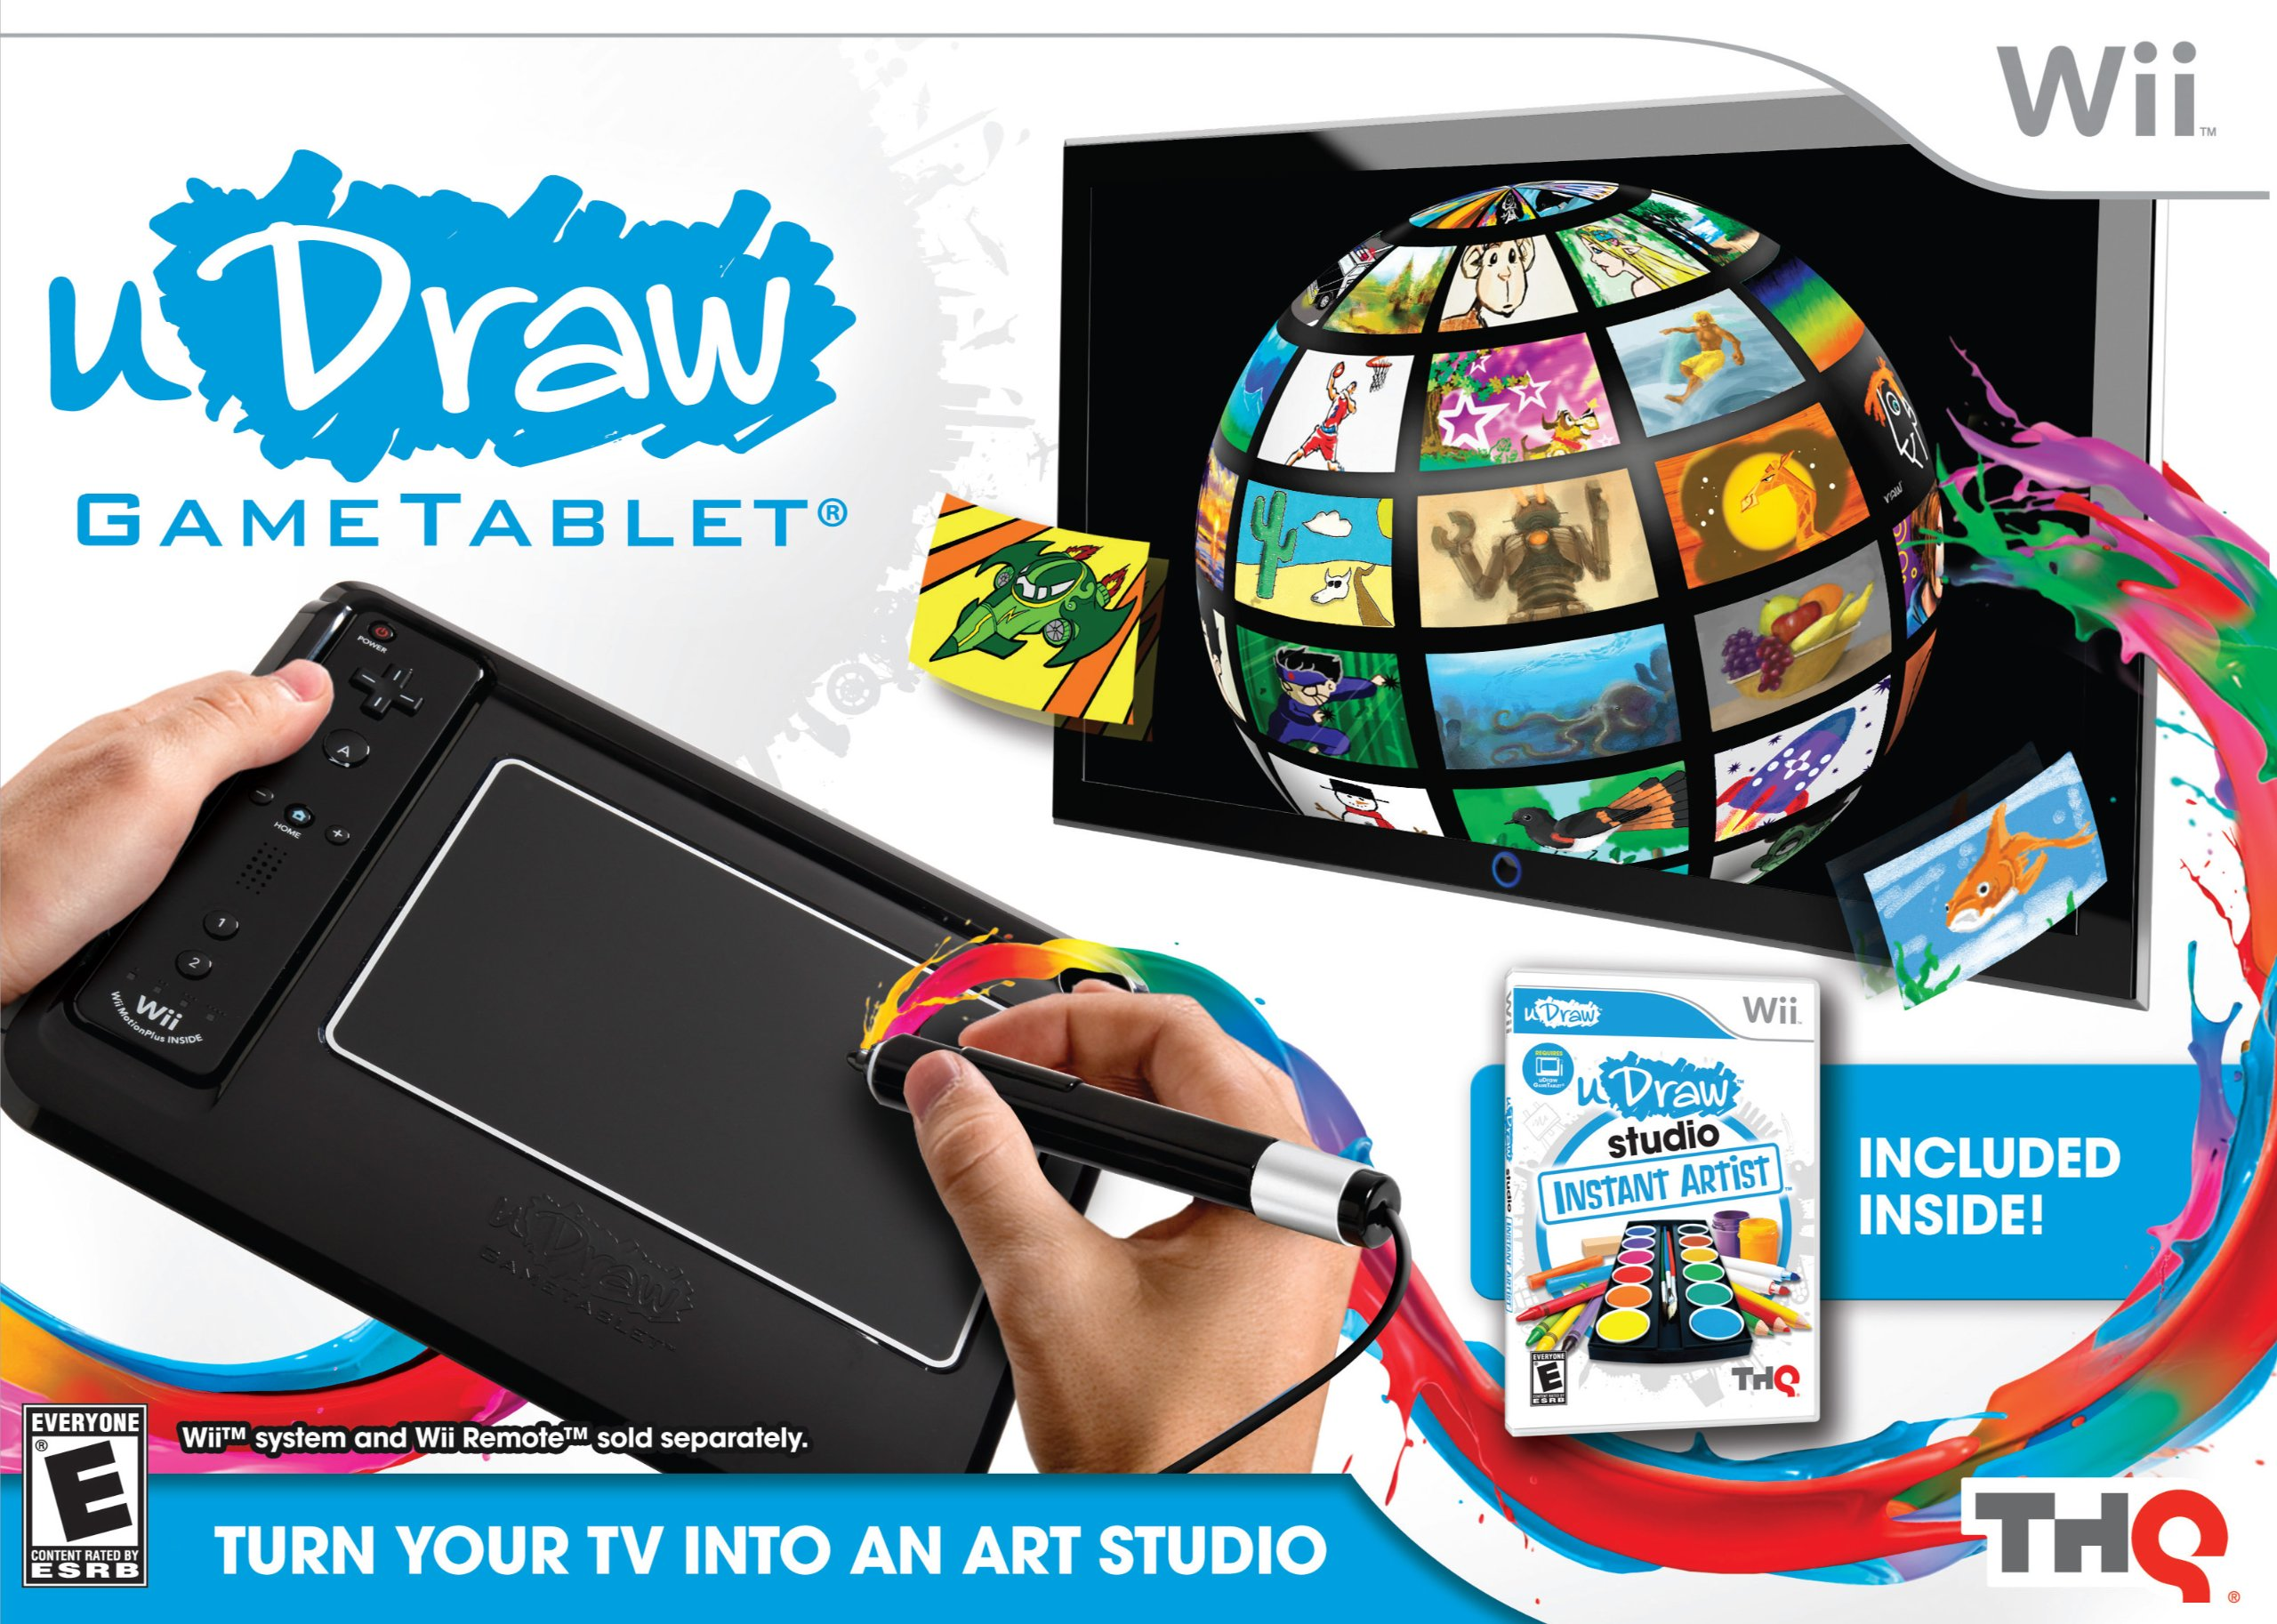 uDraw Game tablet with uDraw Studio: Instant Artist - Black - Nintendo Wii